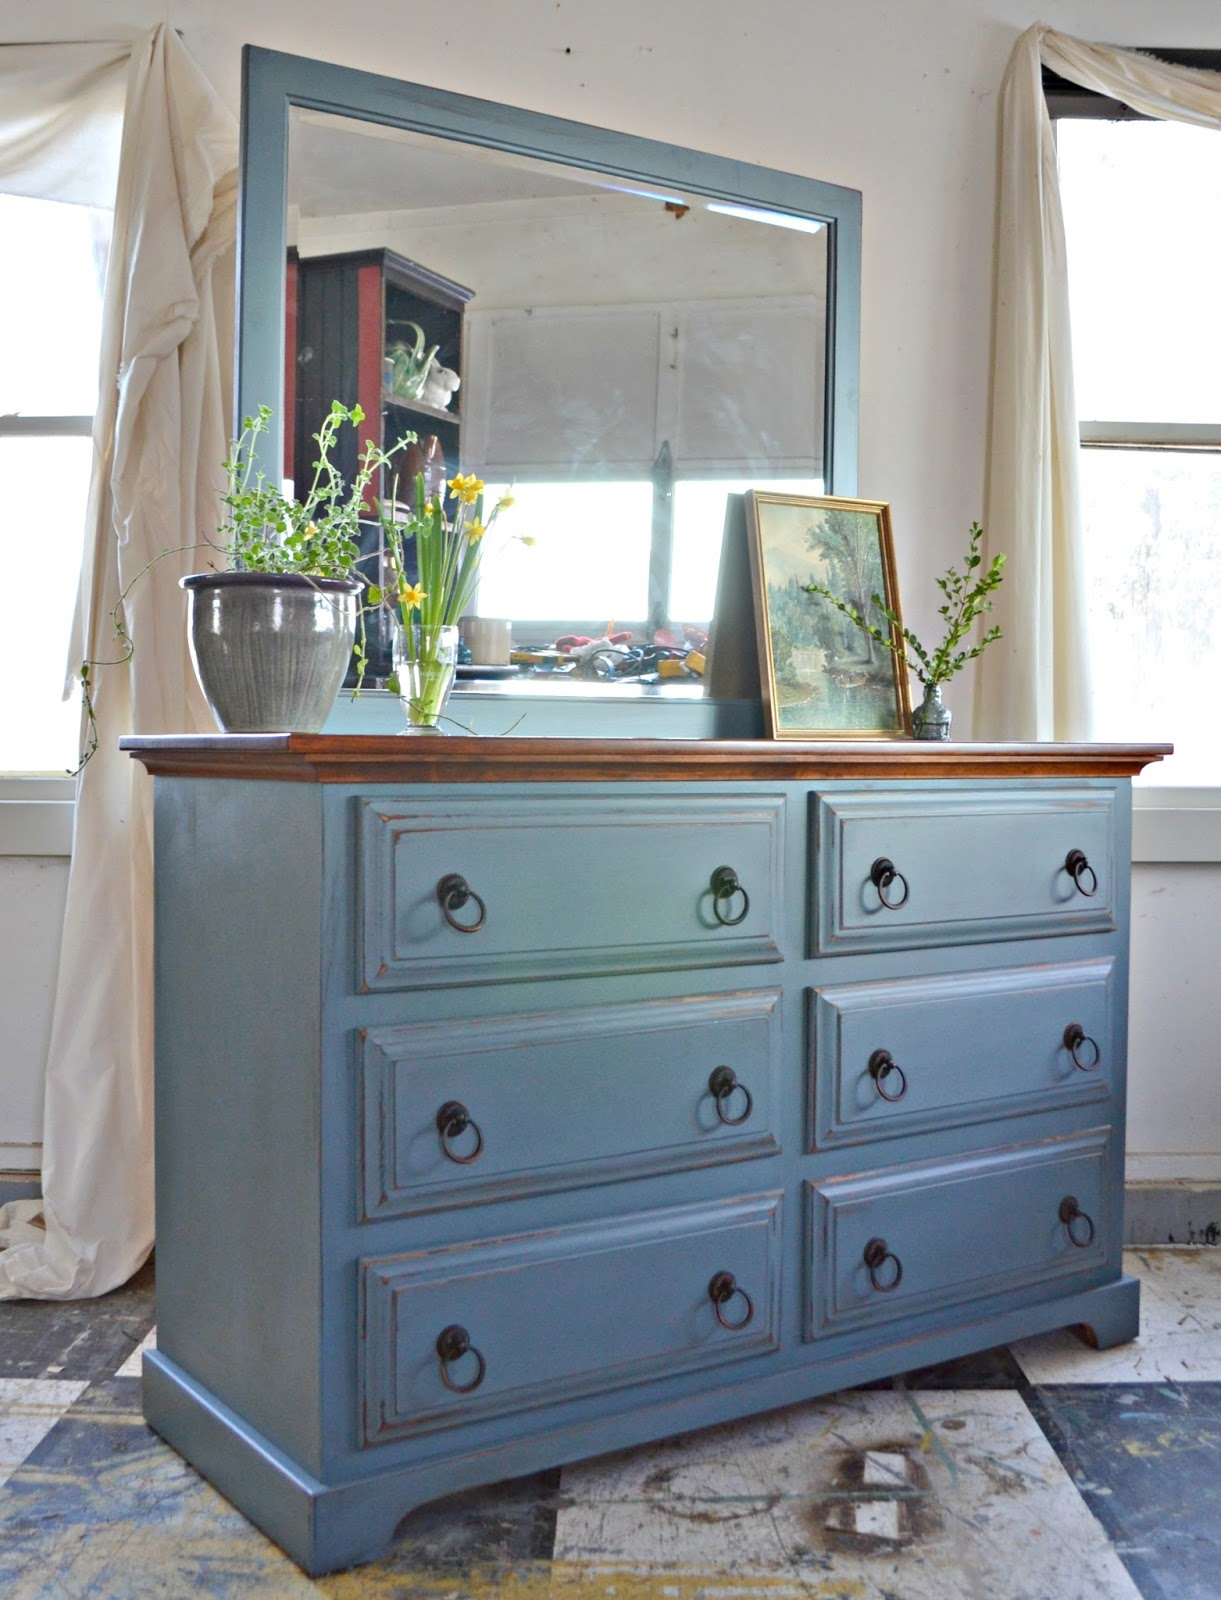 Heir and Space: A Pine Dresser in Slate Blue